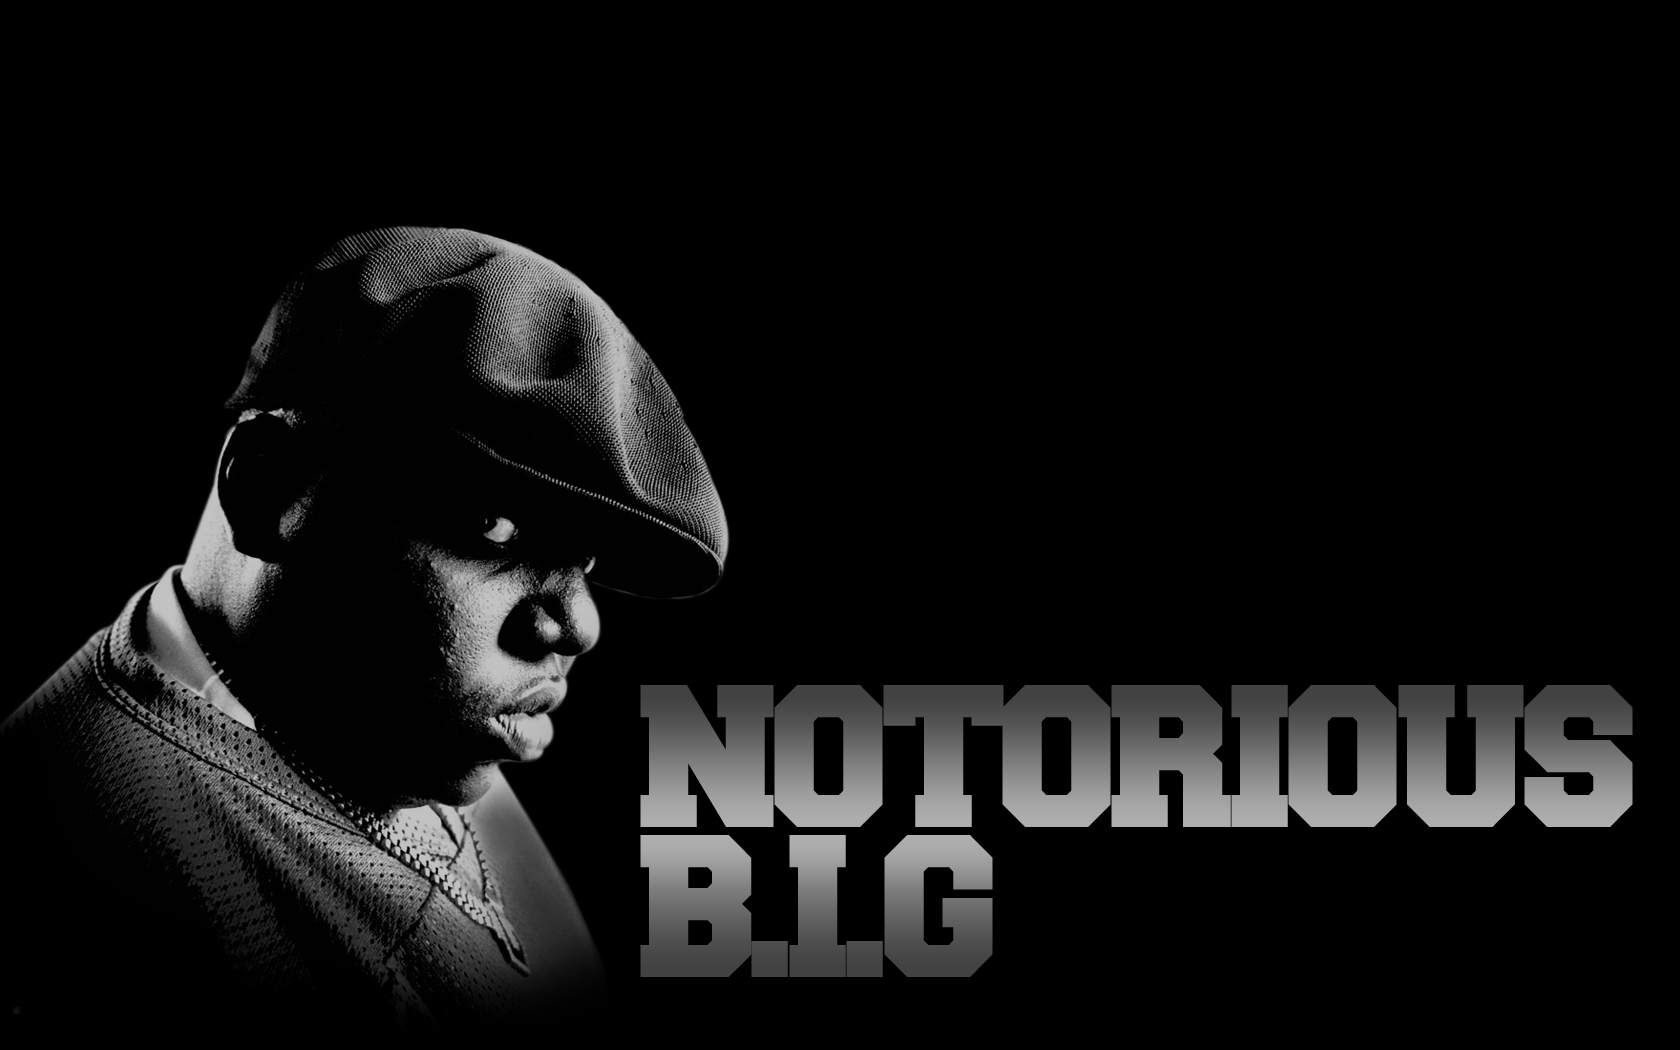 Notorious B.i.g. Wallpapers